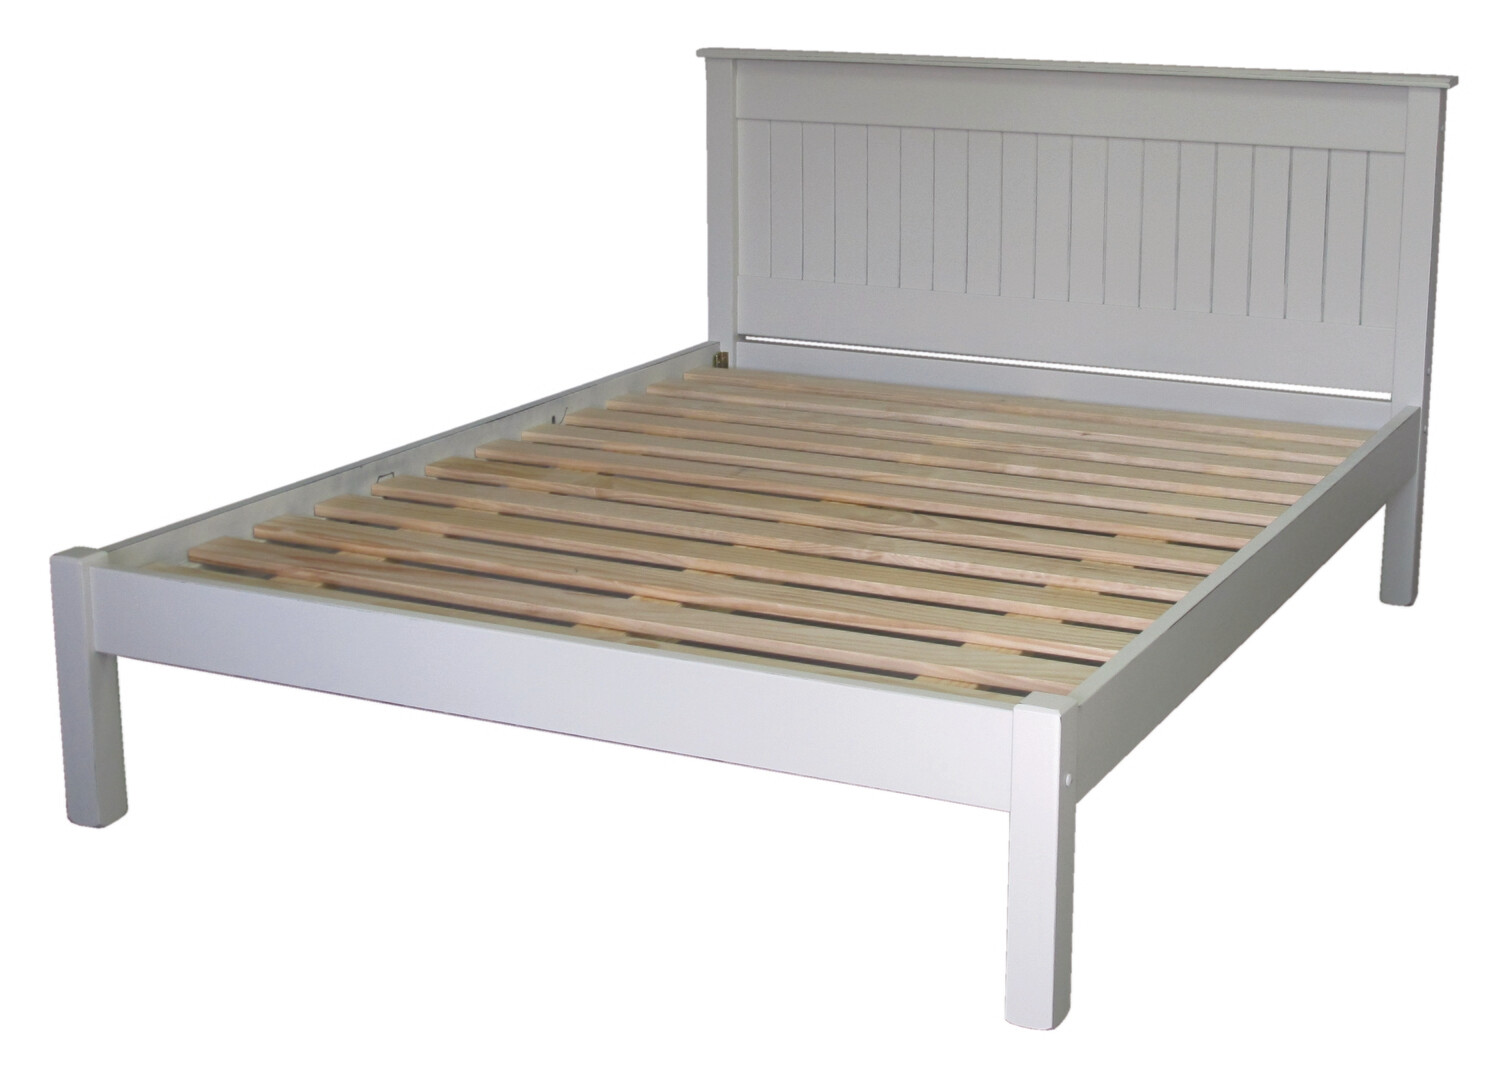 Andorra Slatframe Bed- Low Foot